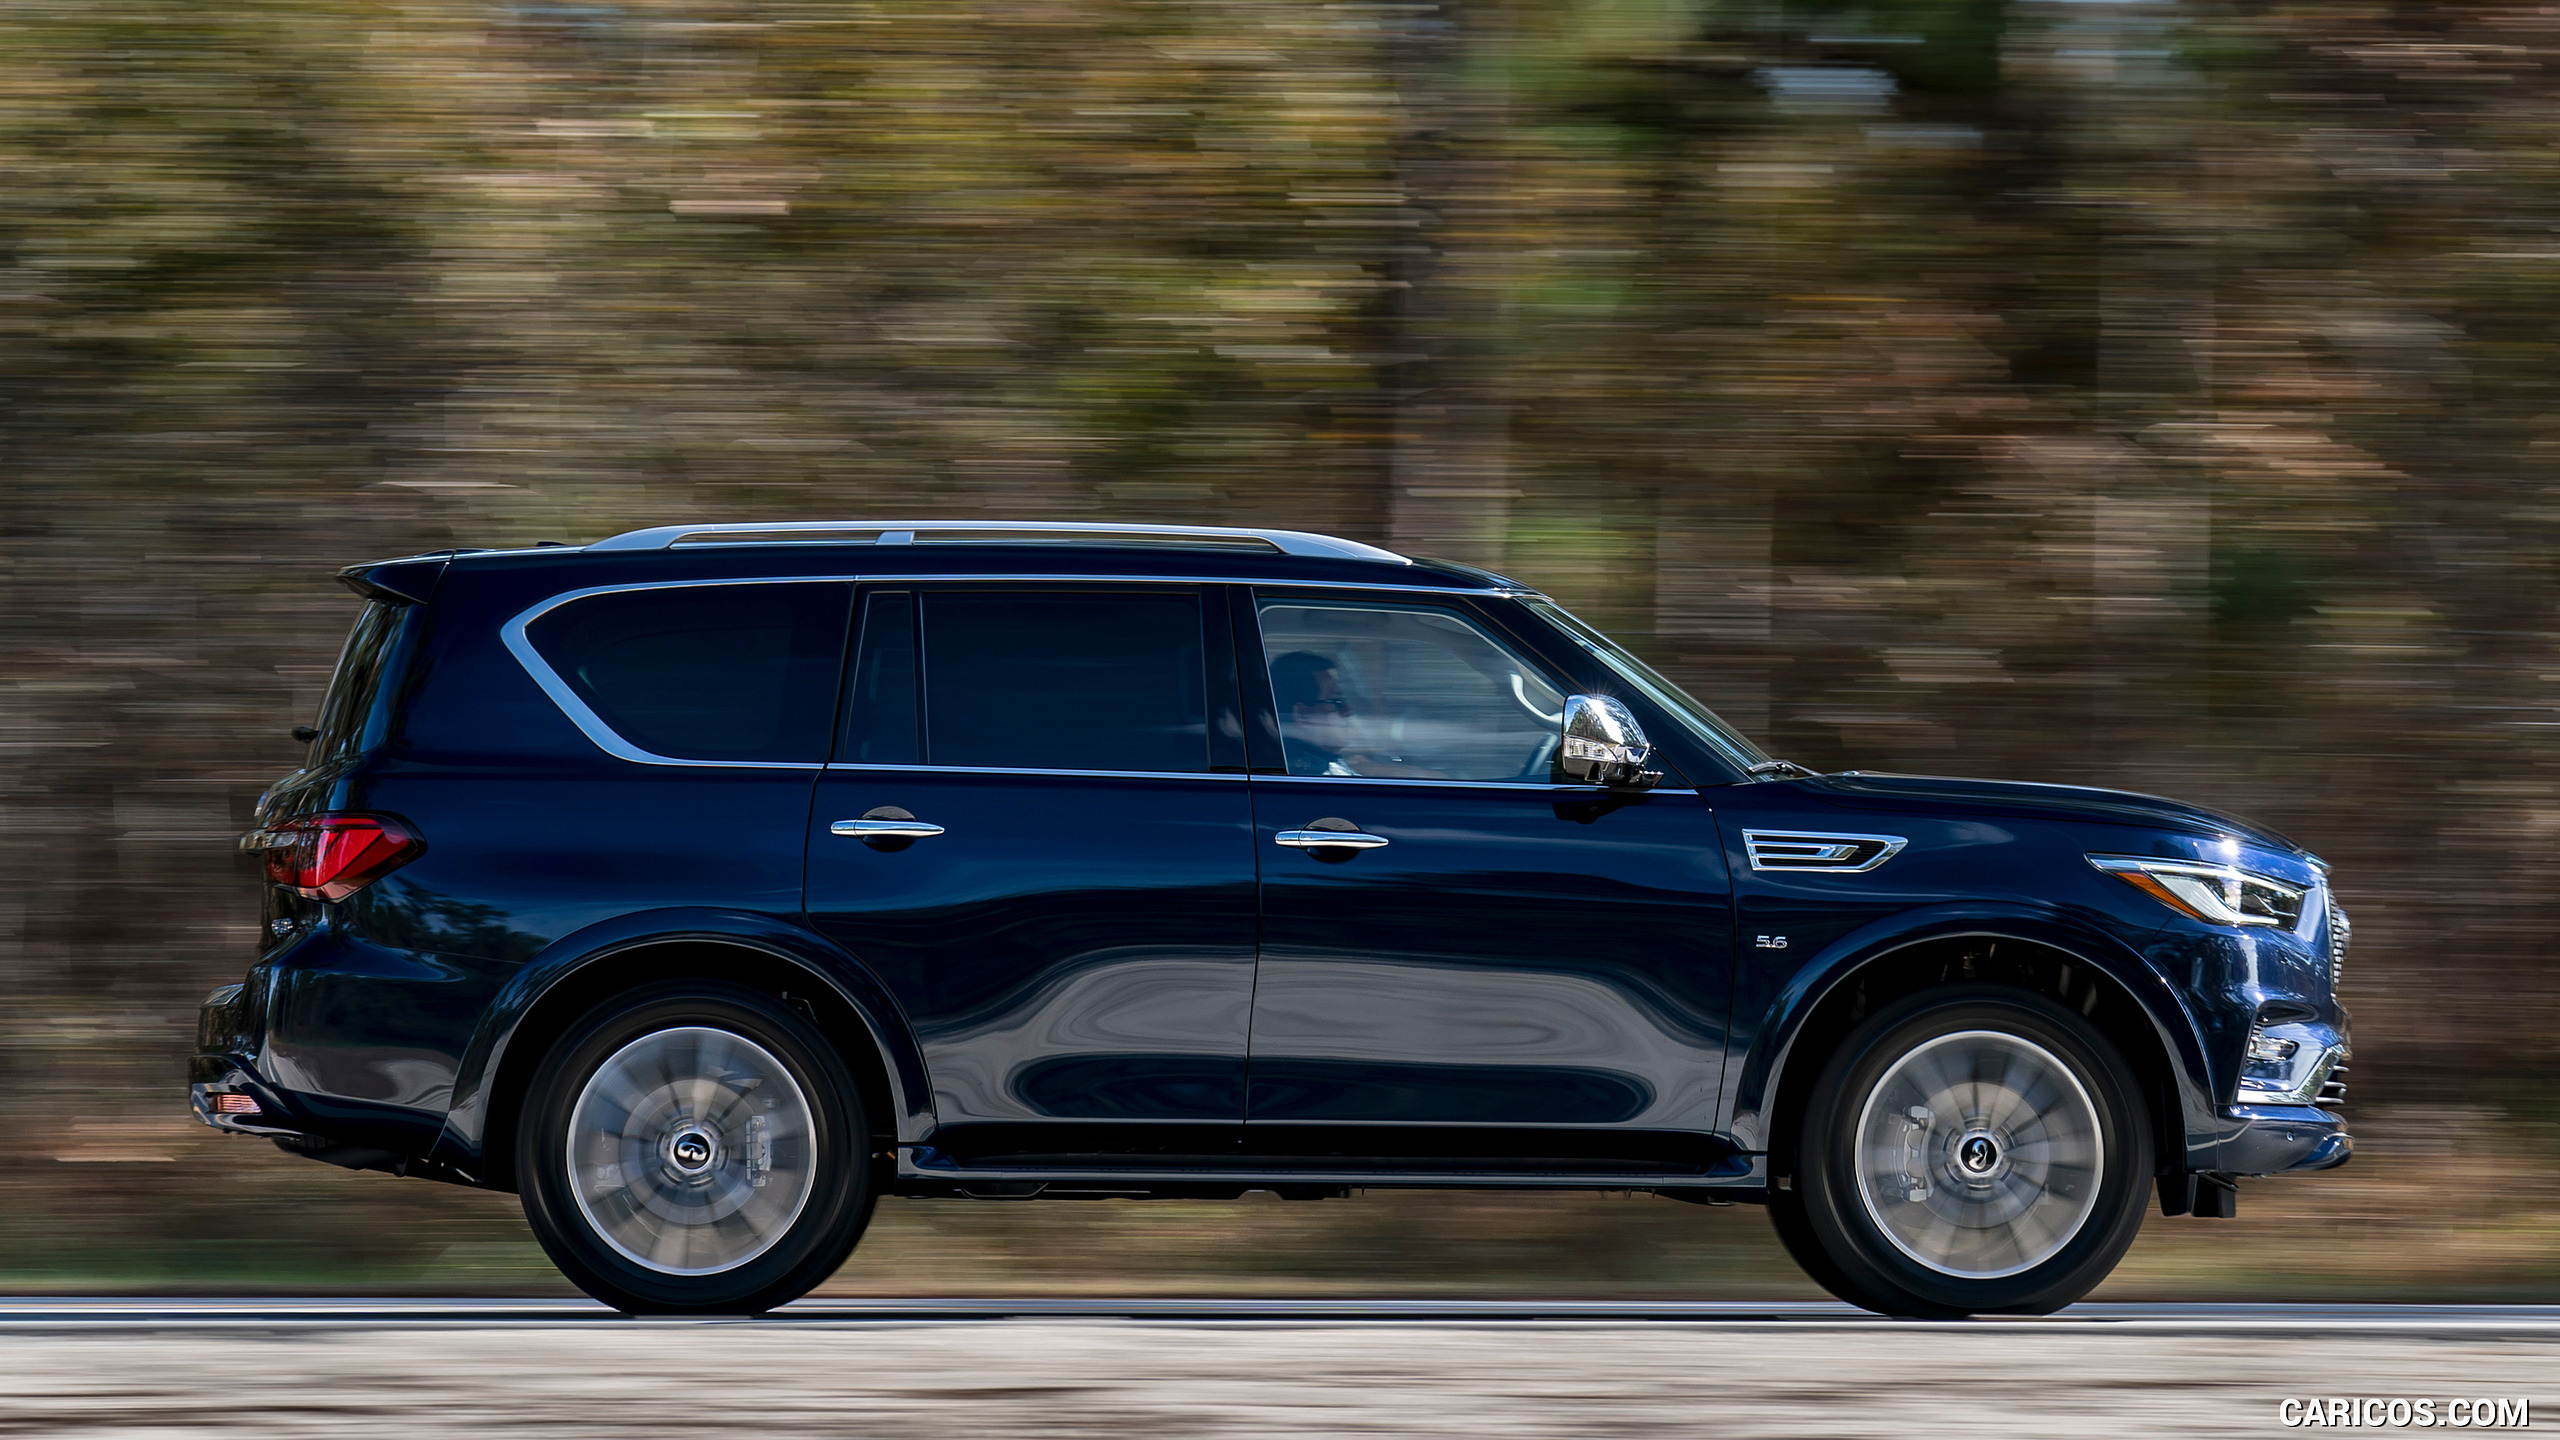 2560x1440 - Infiniti QX80 Wallpapers 32